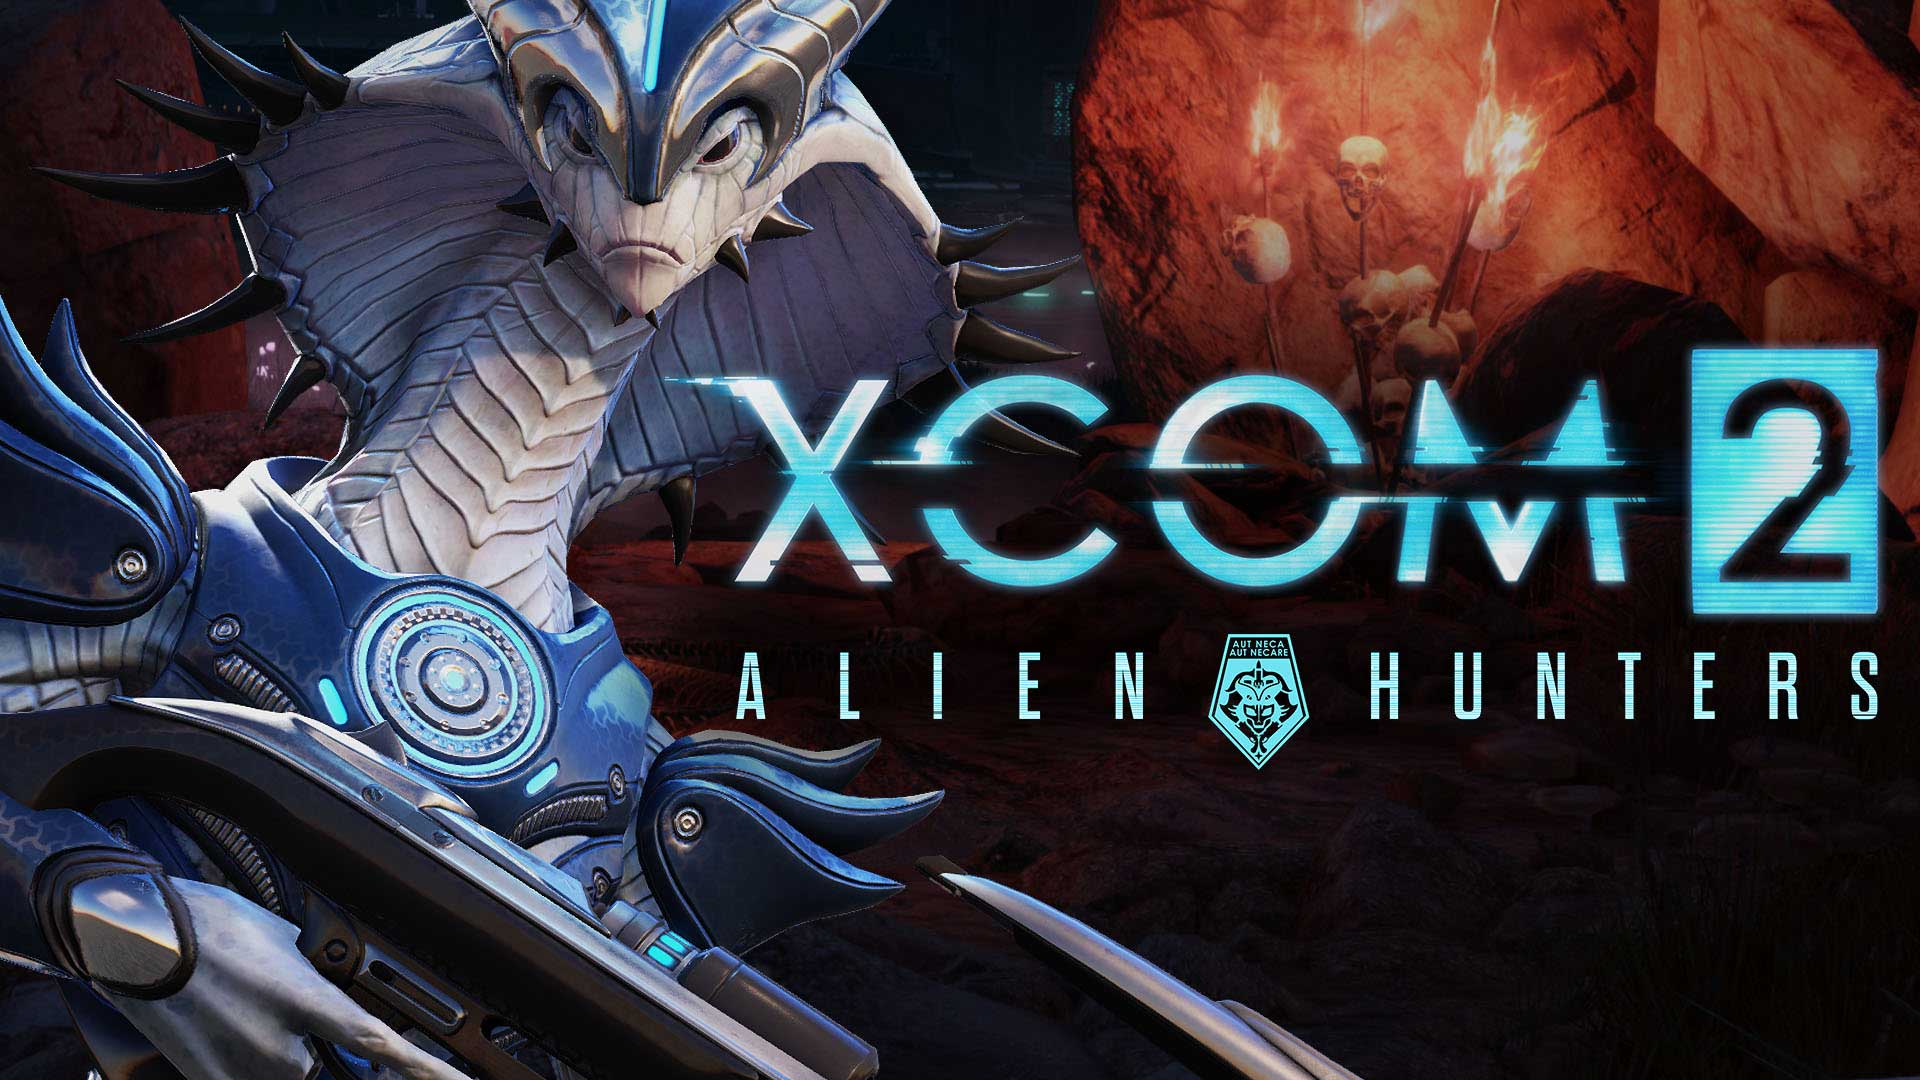 xcom 2 alien hunters dlc brings new mission boss aliens and weapons next week vg247. Black Bedroom Furniture Sets. Home Design Ideas